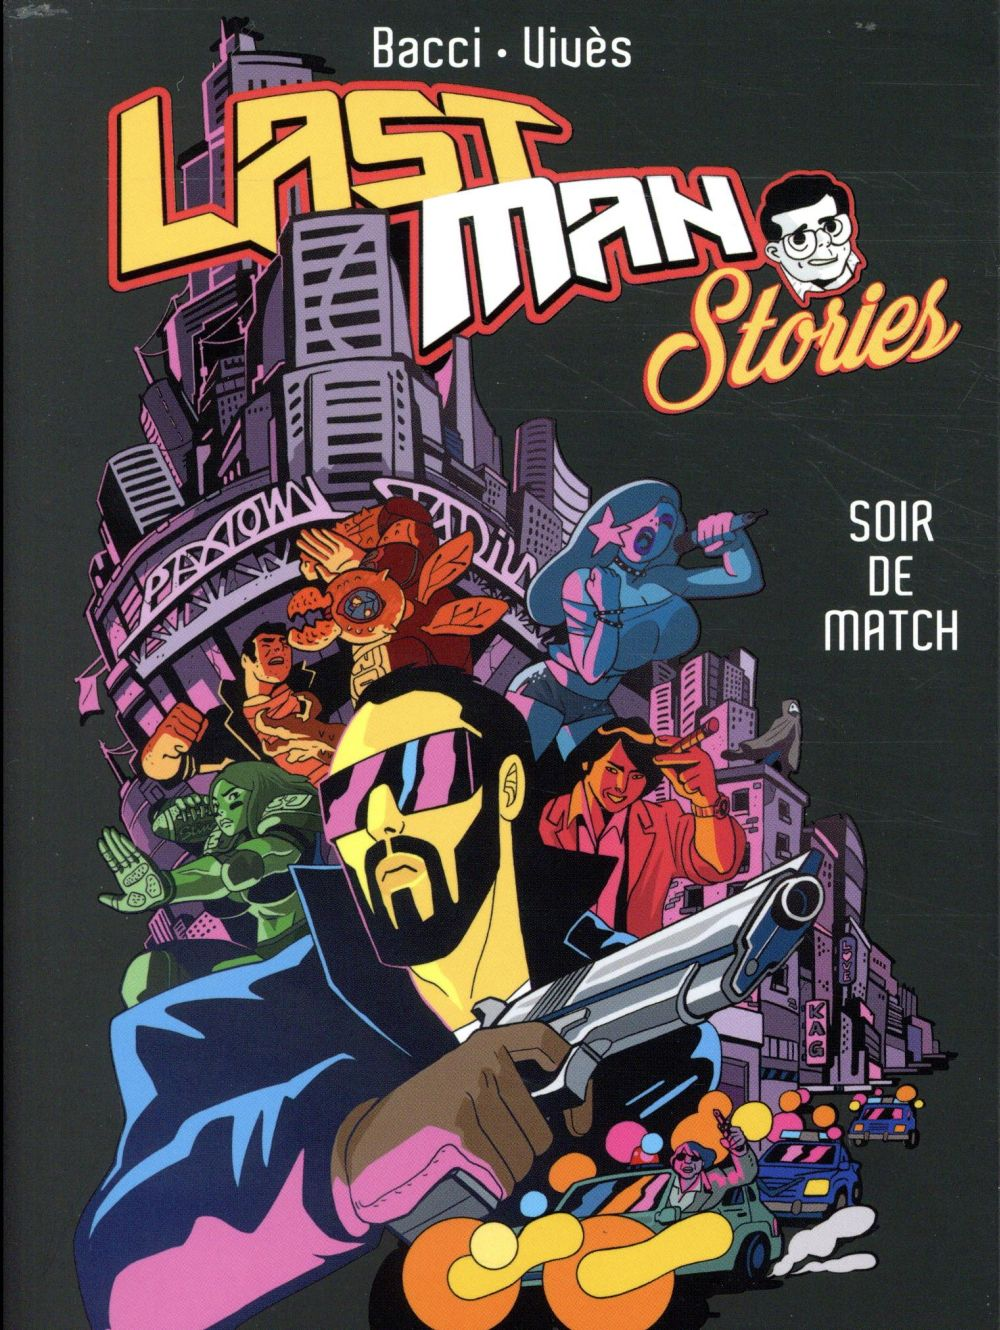 LASTMAN STORIES - SOIR DE MATCH